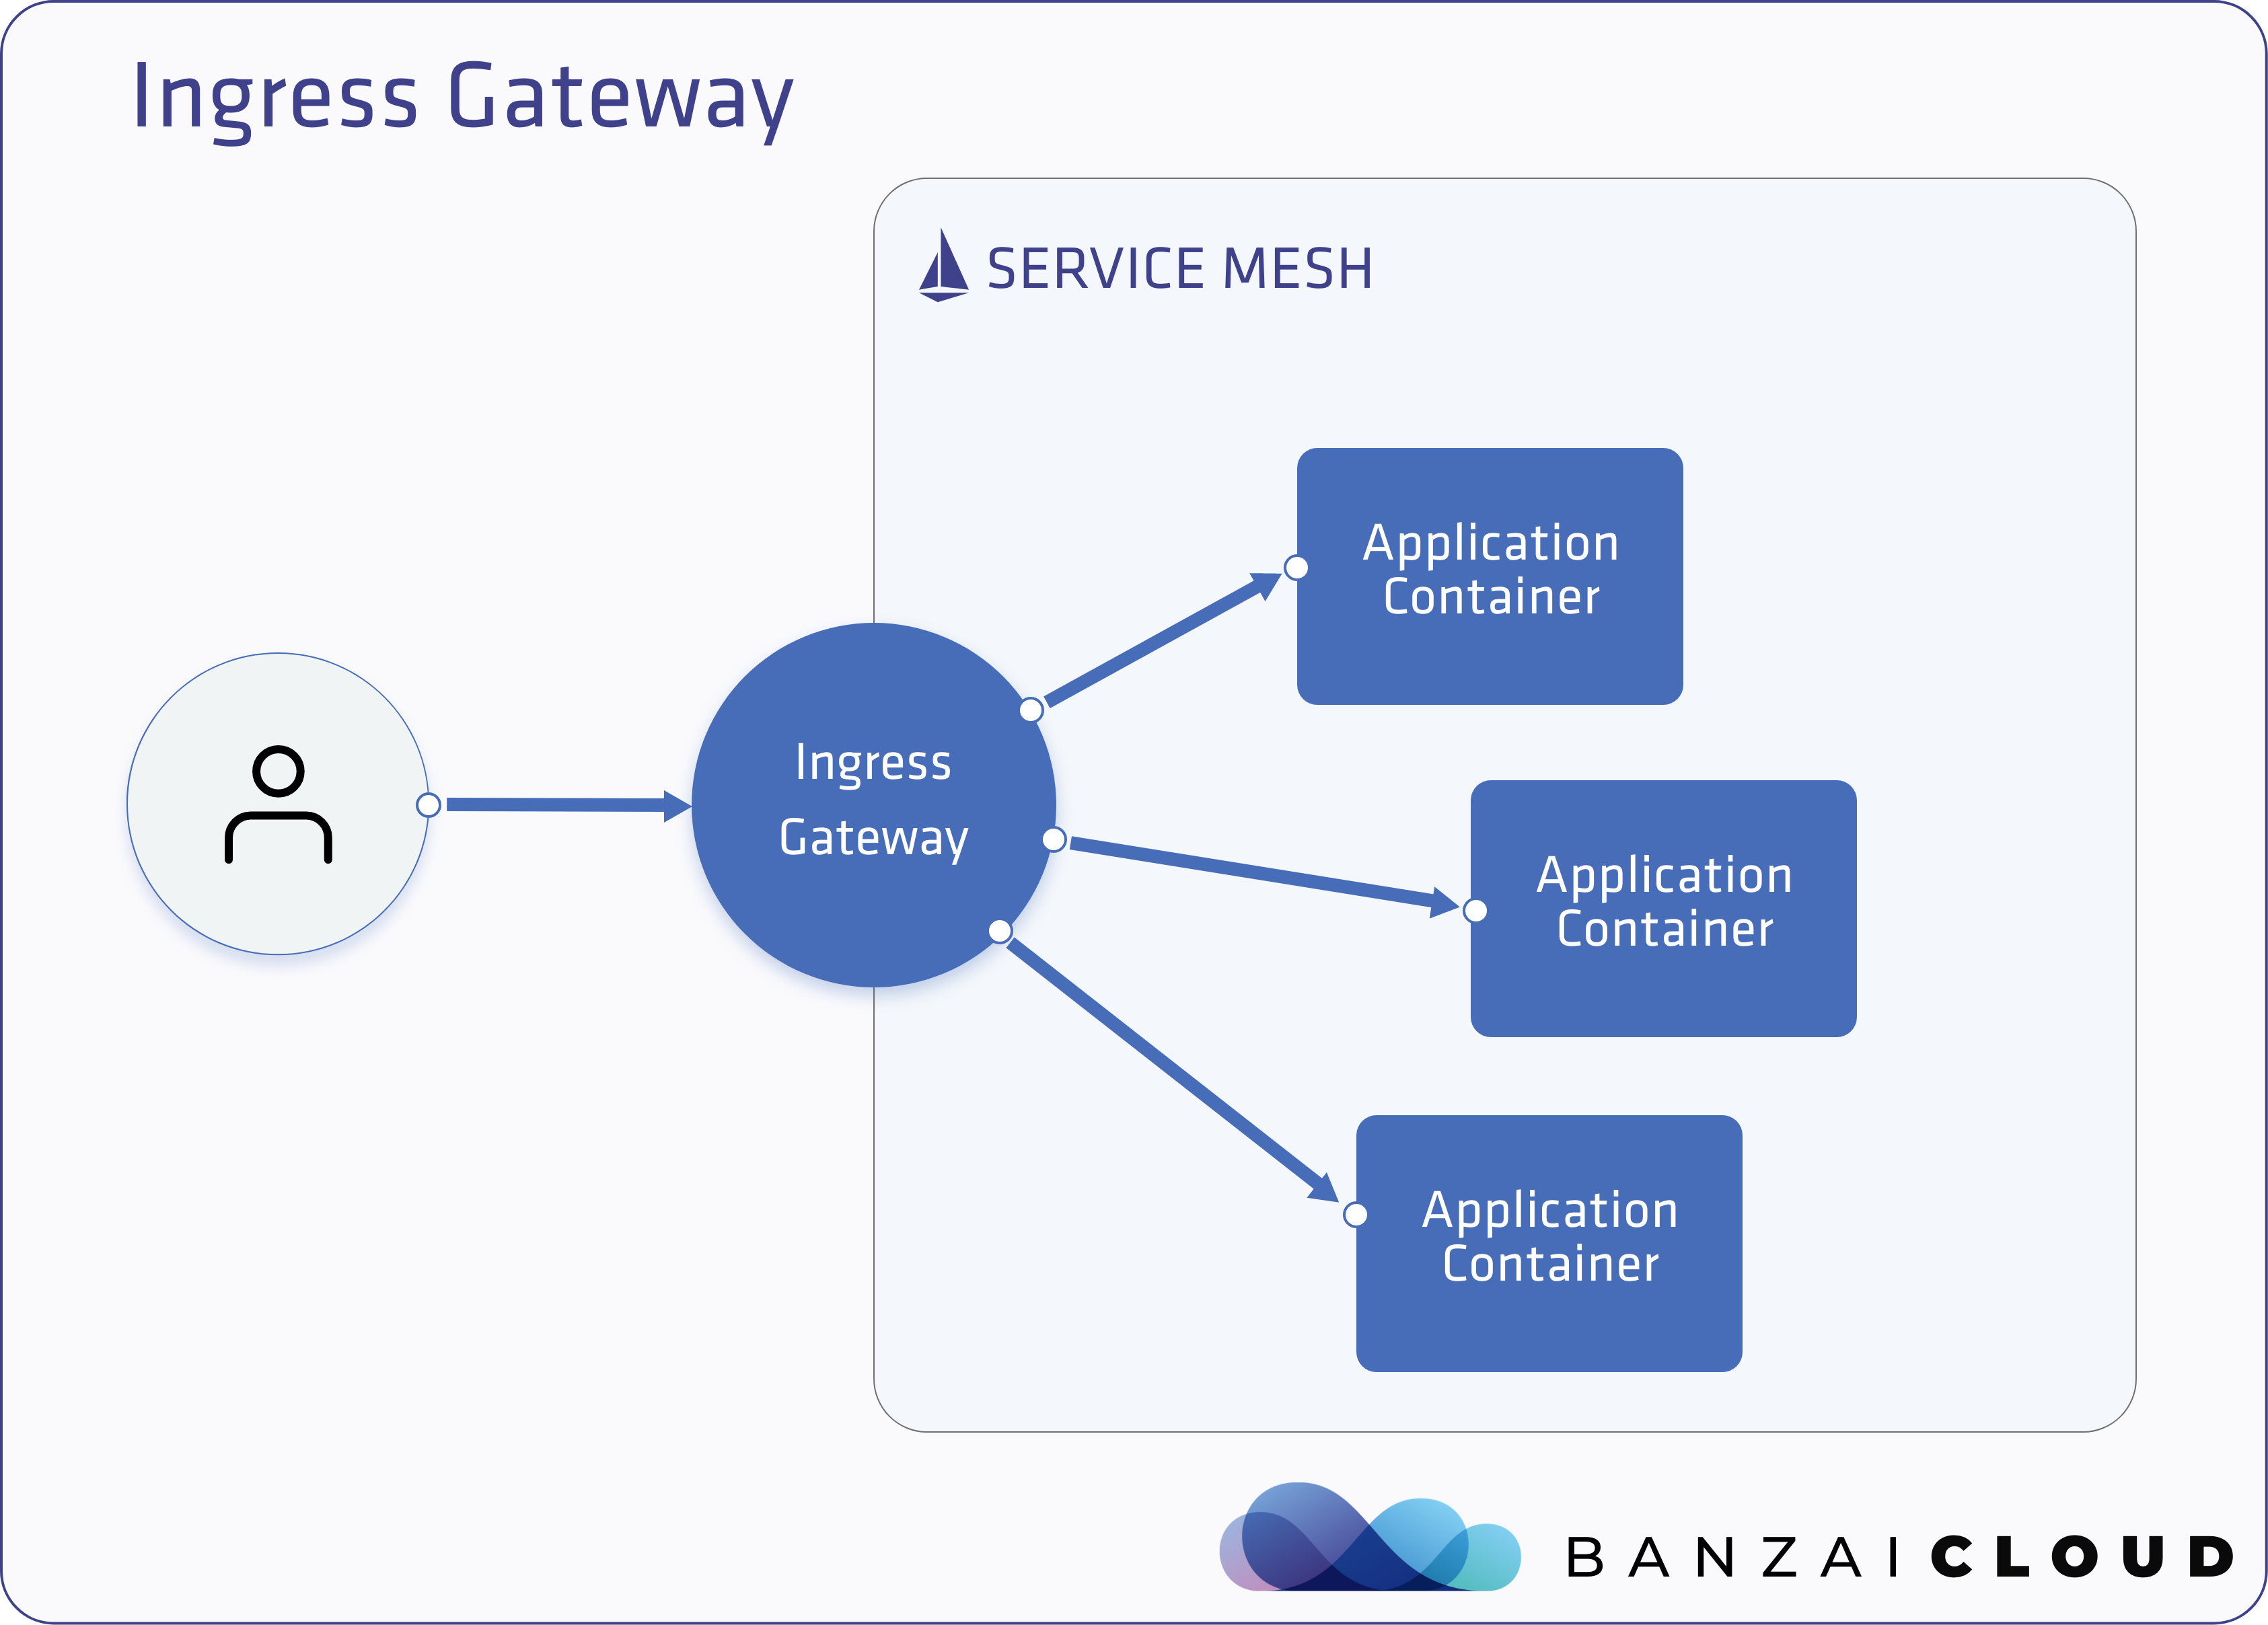 Ingress Gateway